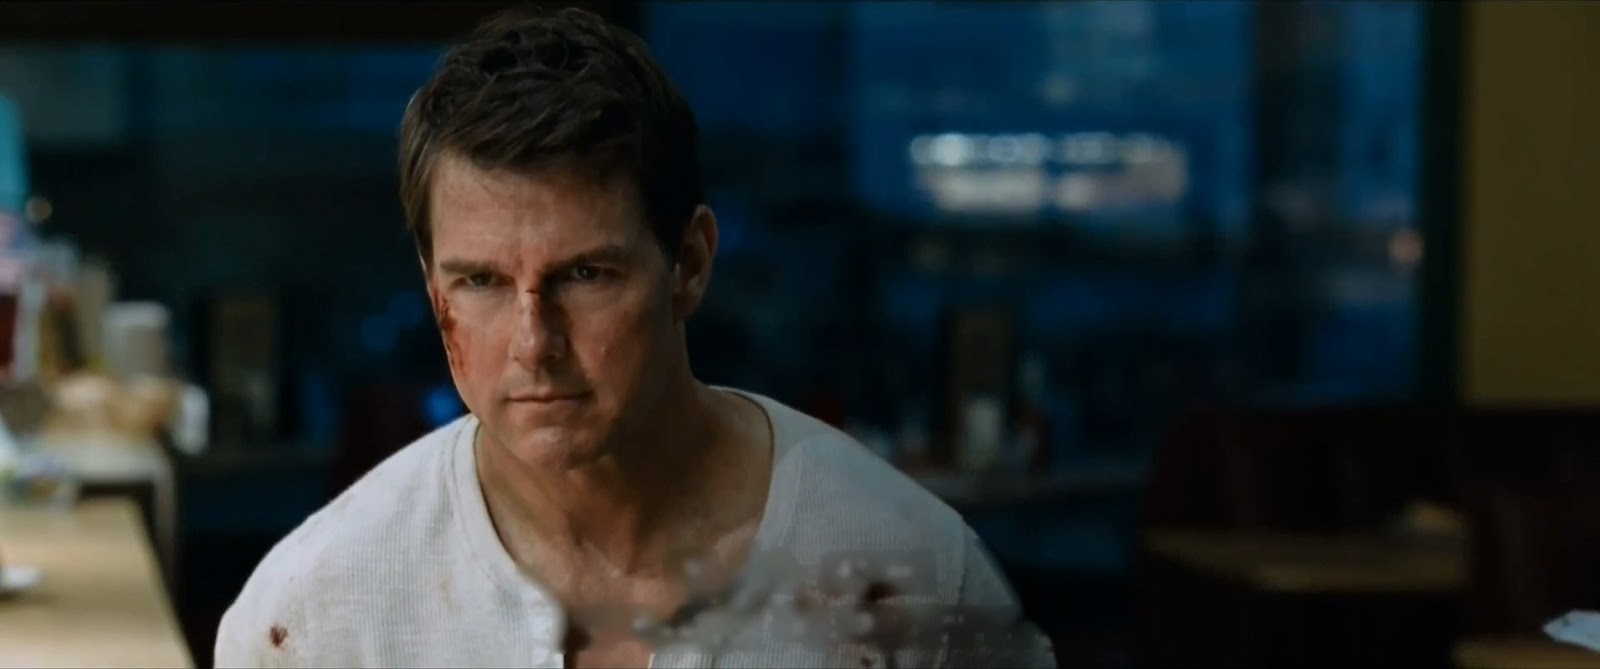 Download Jack Reacher Sem Retorno Torrent HDRip Dublado MKV 720p 1080p